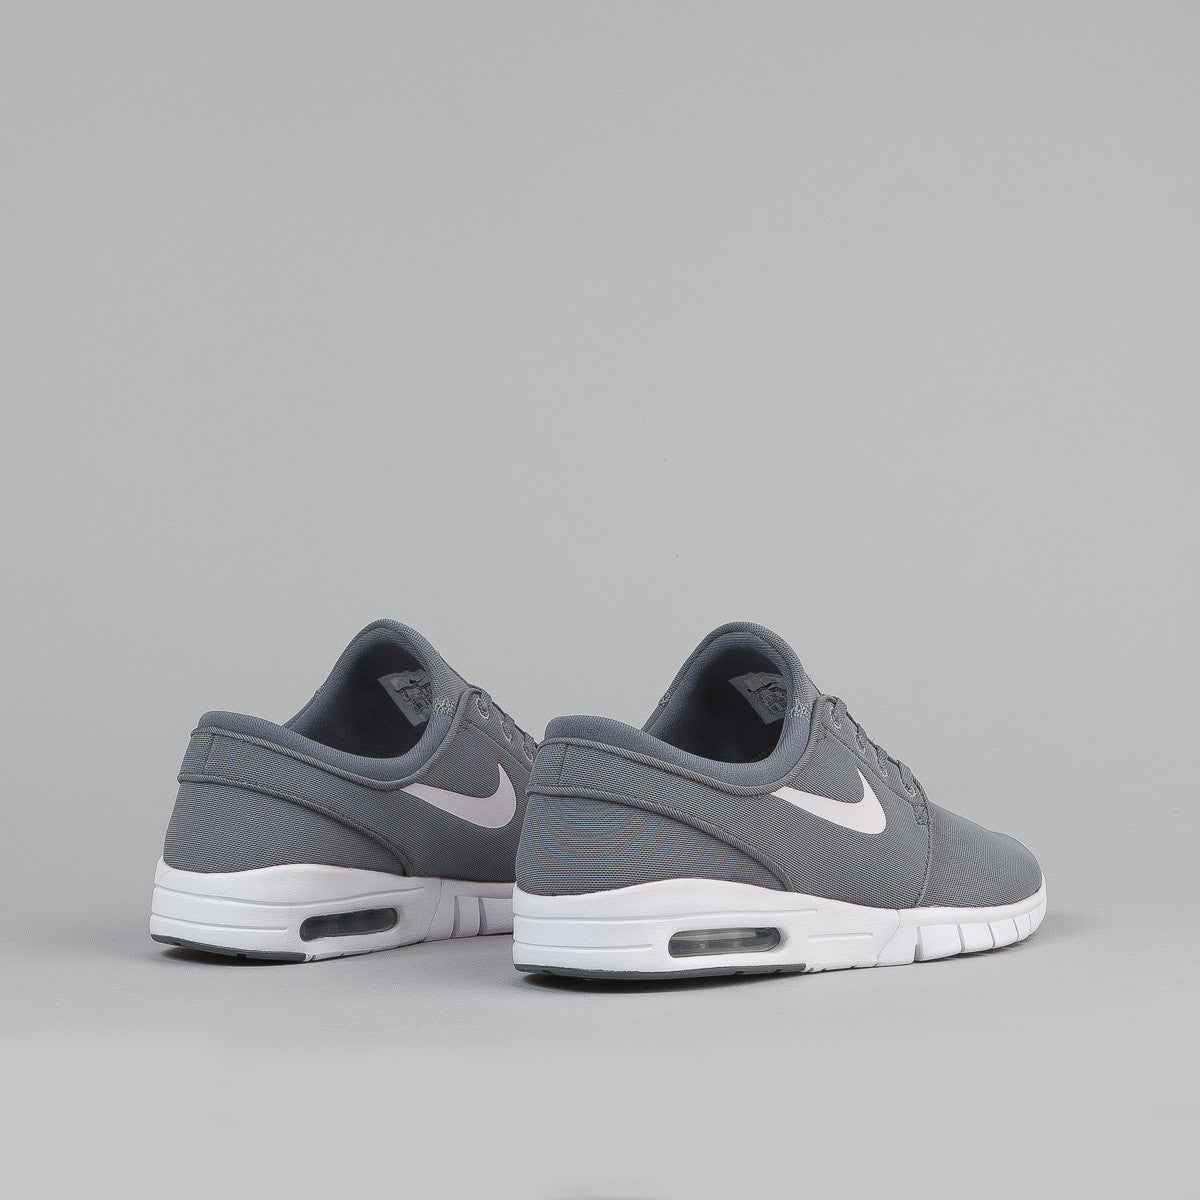 Nike SB Stefan Janoski Max Shoes - Cool Grey / White - White - Dark Grey